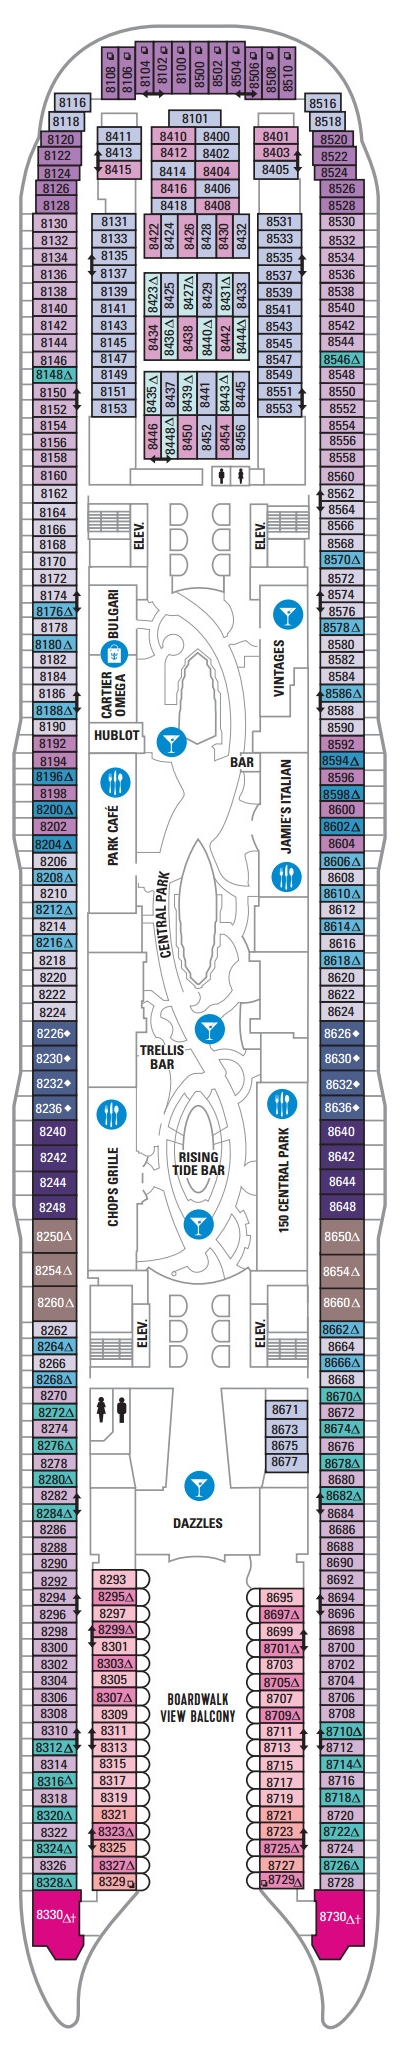 Harmony of the Seas Deck 8 layout